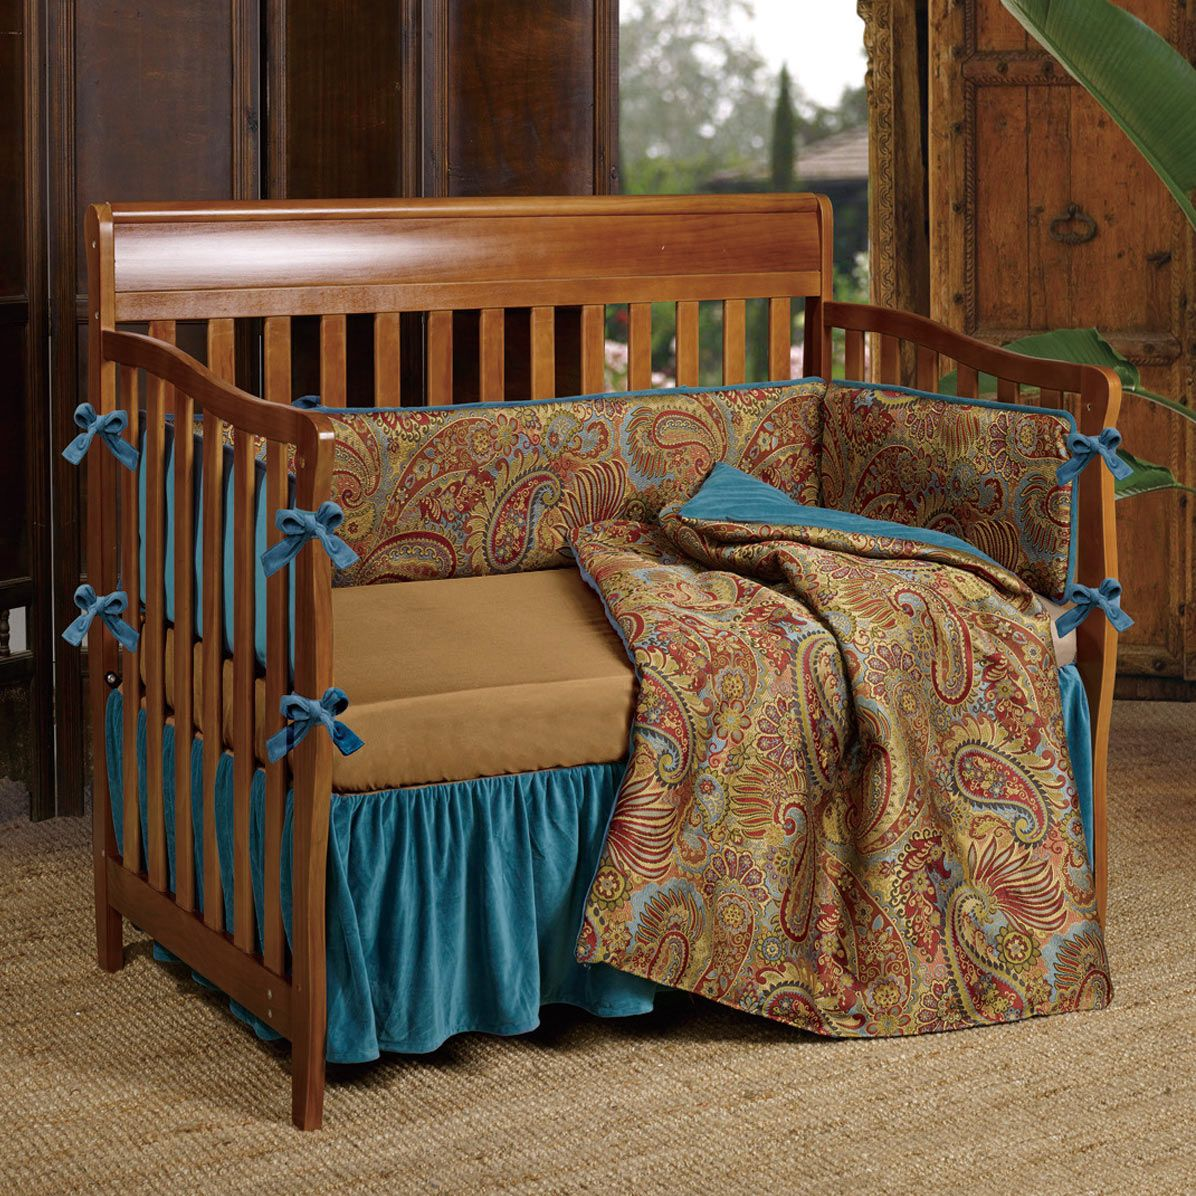 Baby San Angelo Crib Bedding Set - 3 pcs